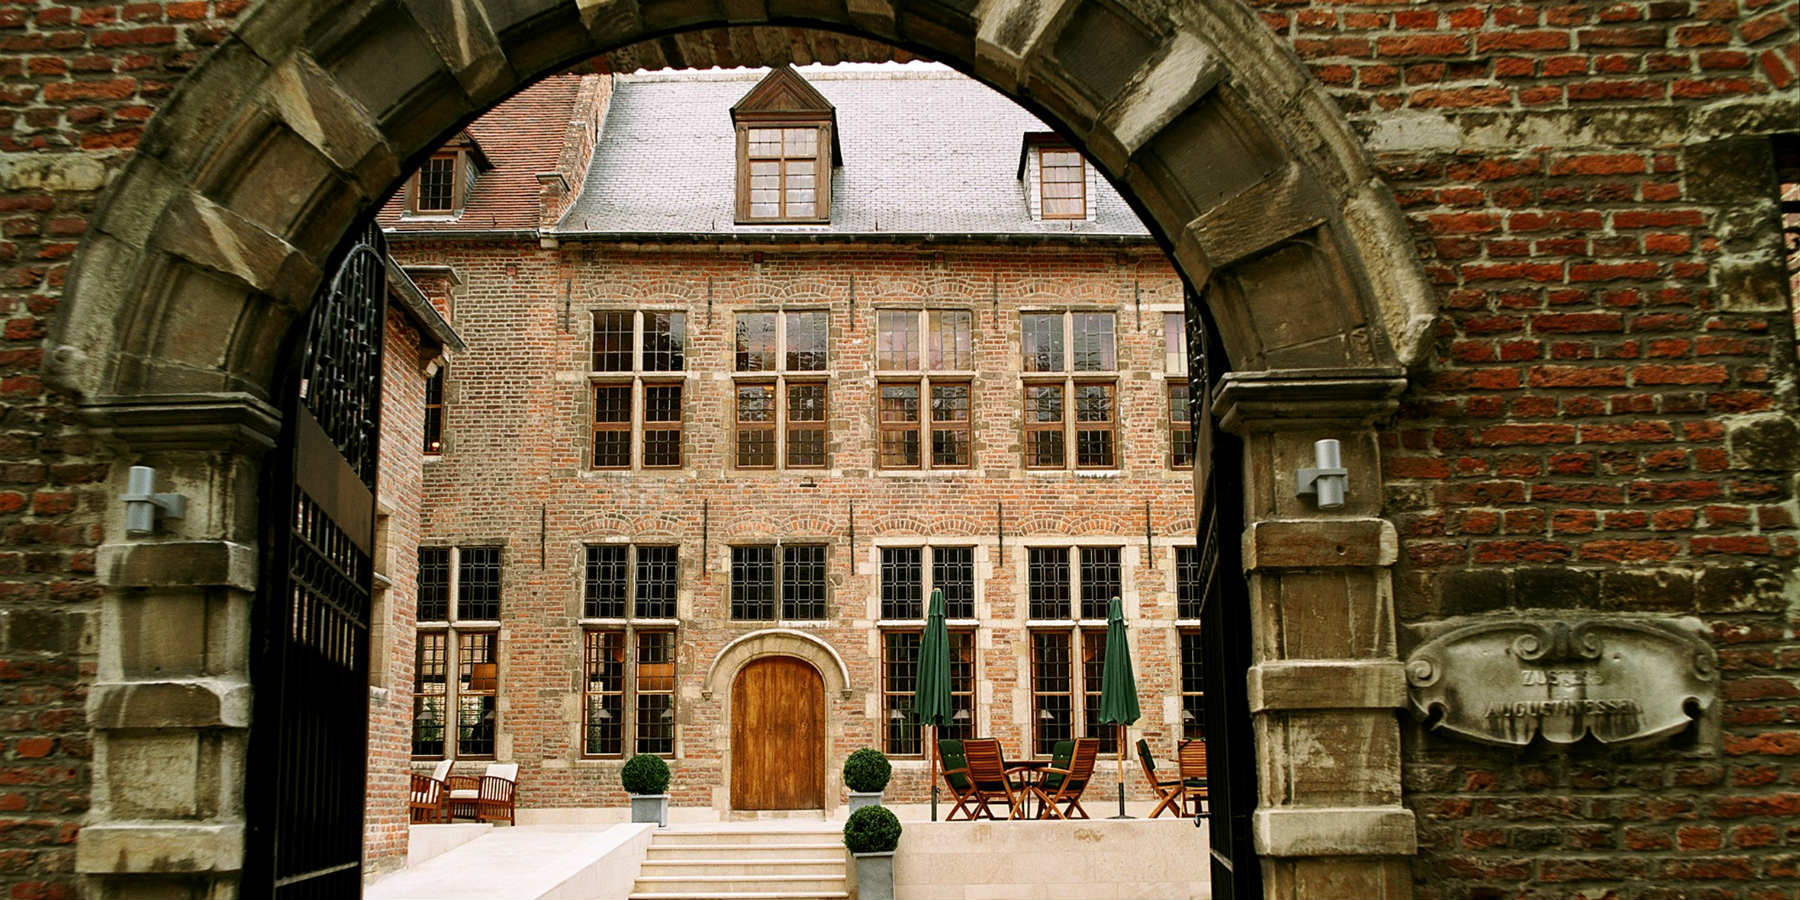 Martin's Klooster in Leuven